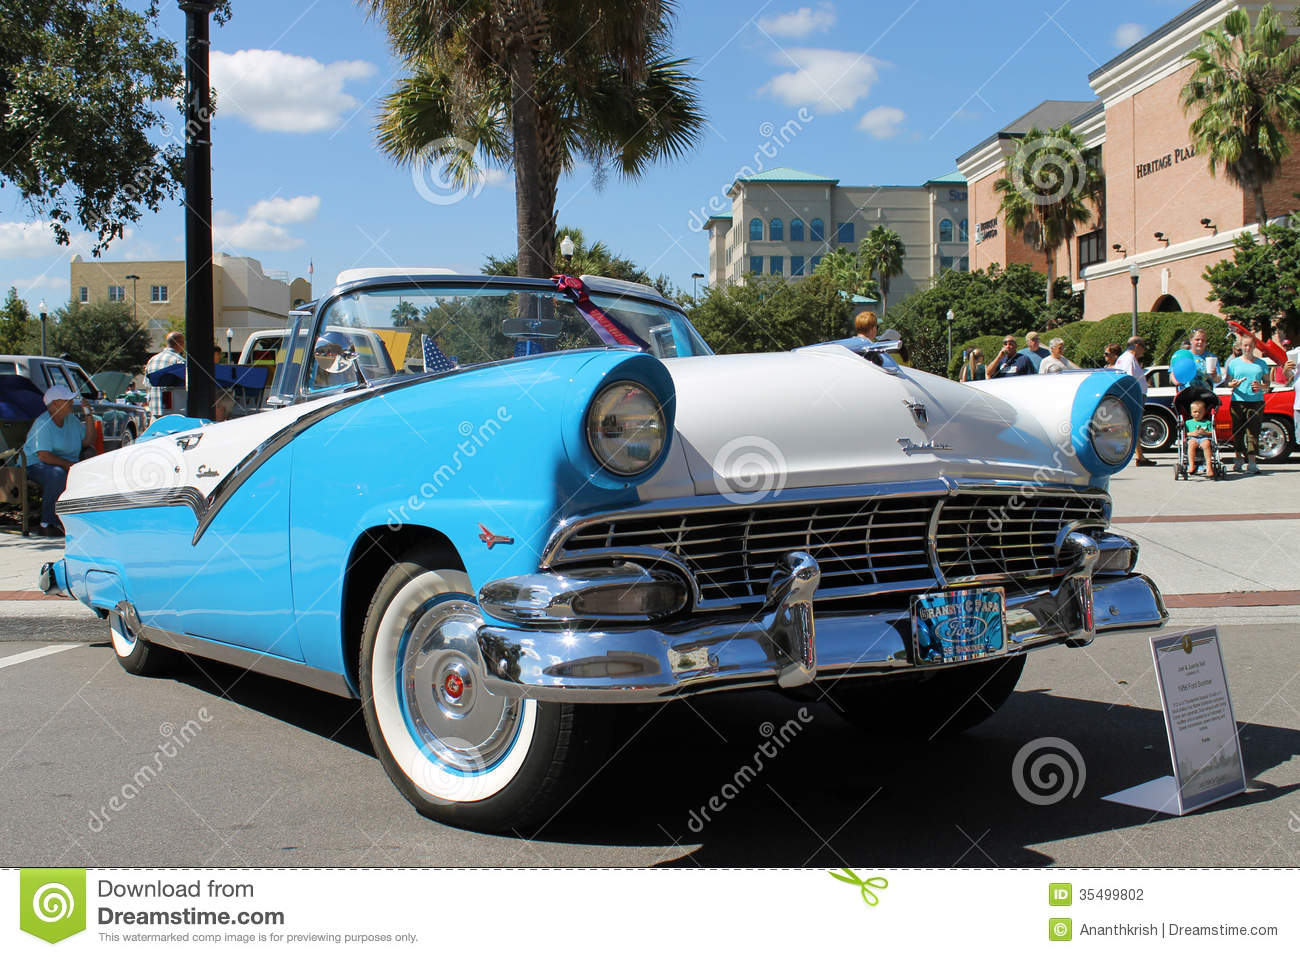 Old Ford Fairlane Car At The Car Show Editorial Photography Image - Old car shows